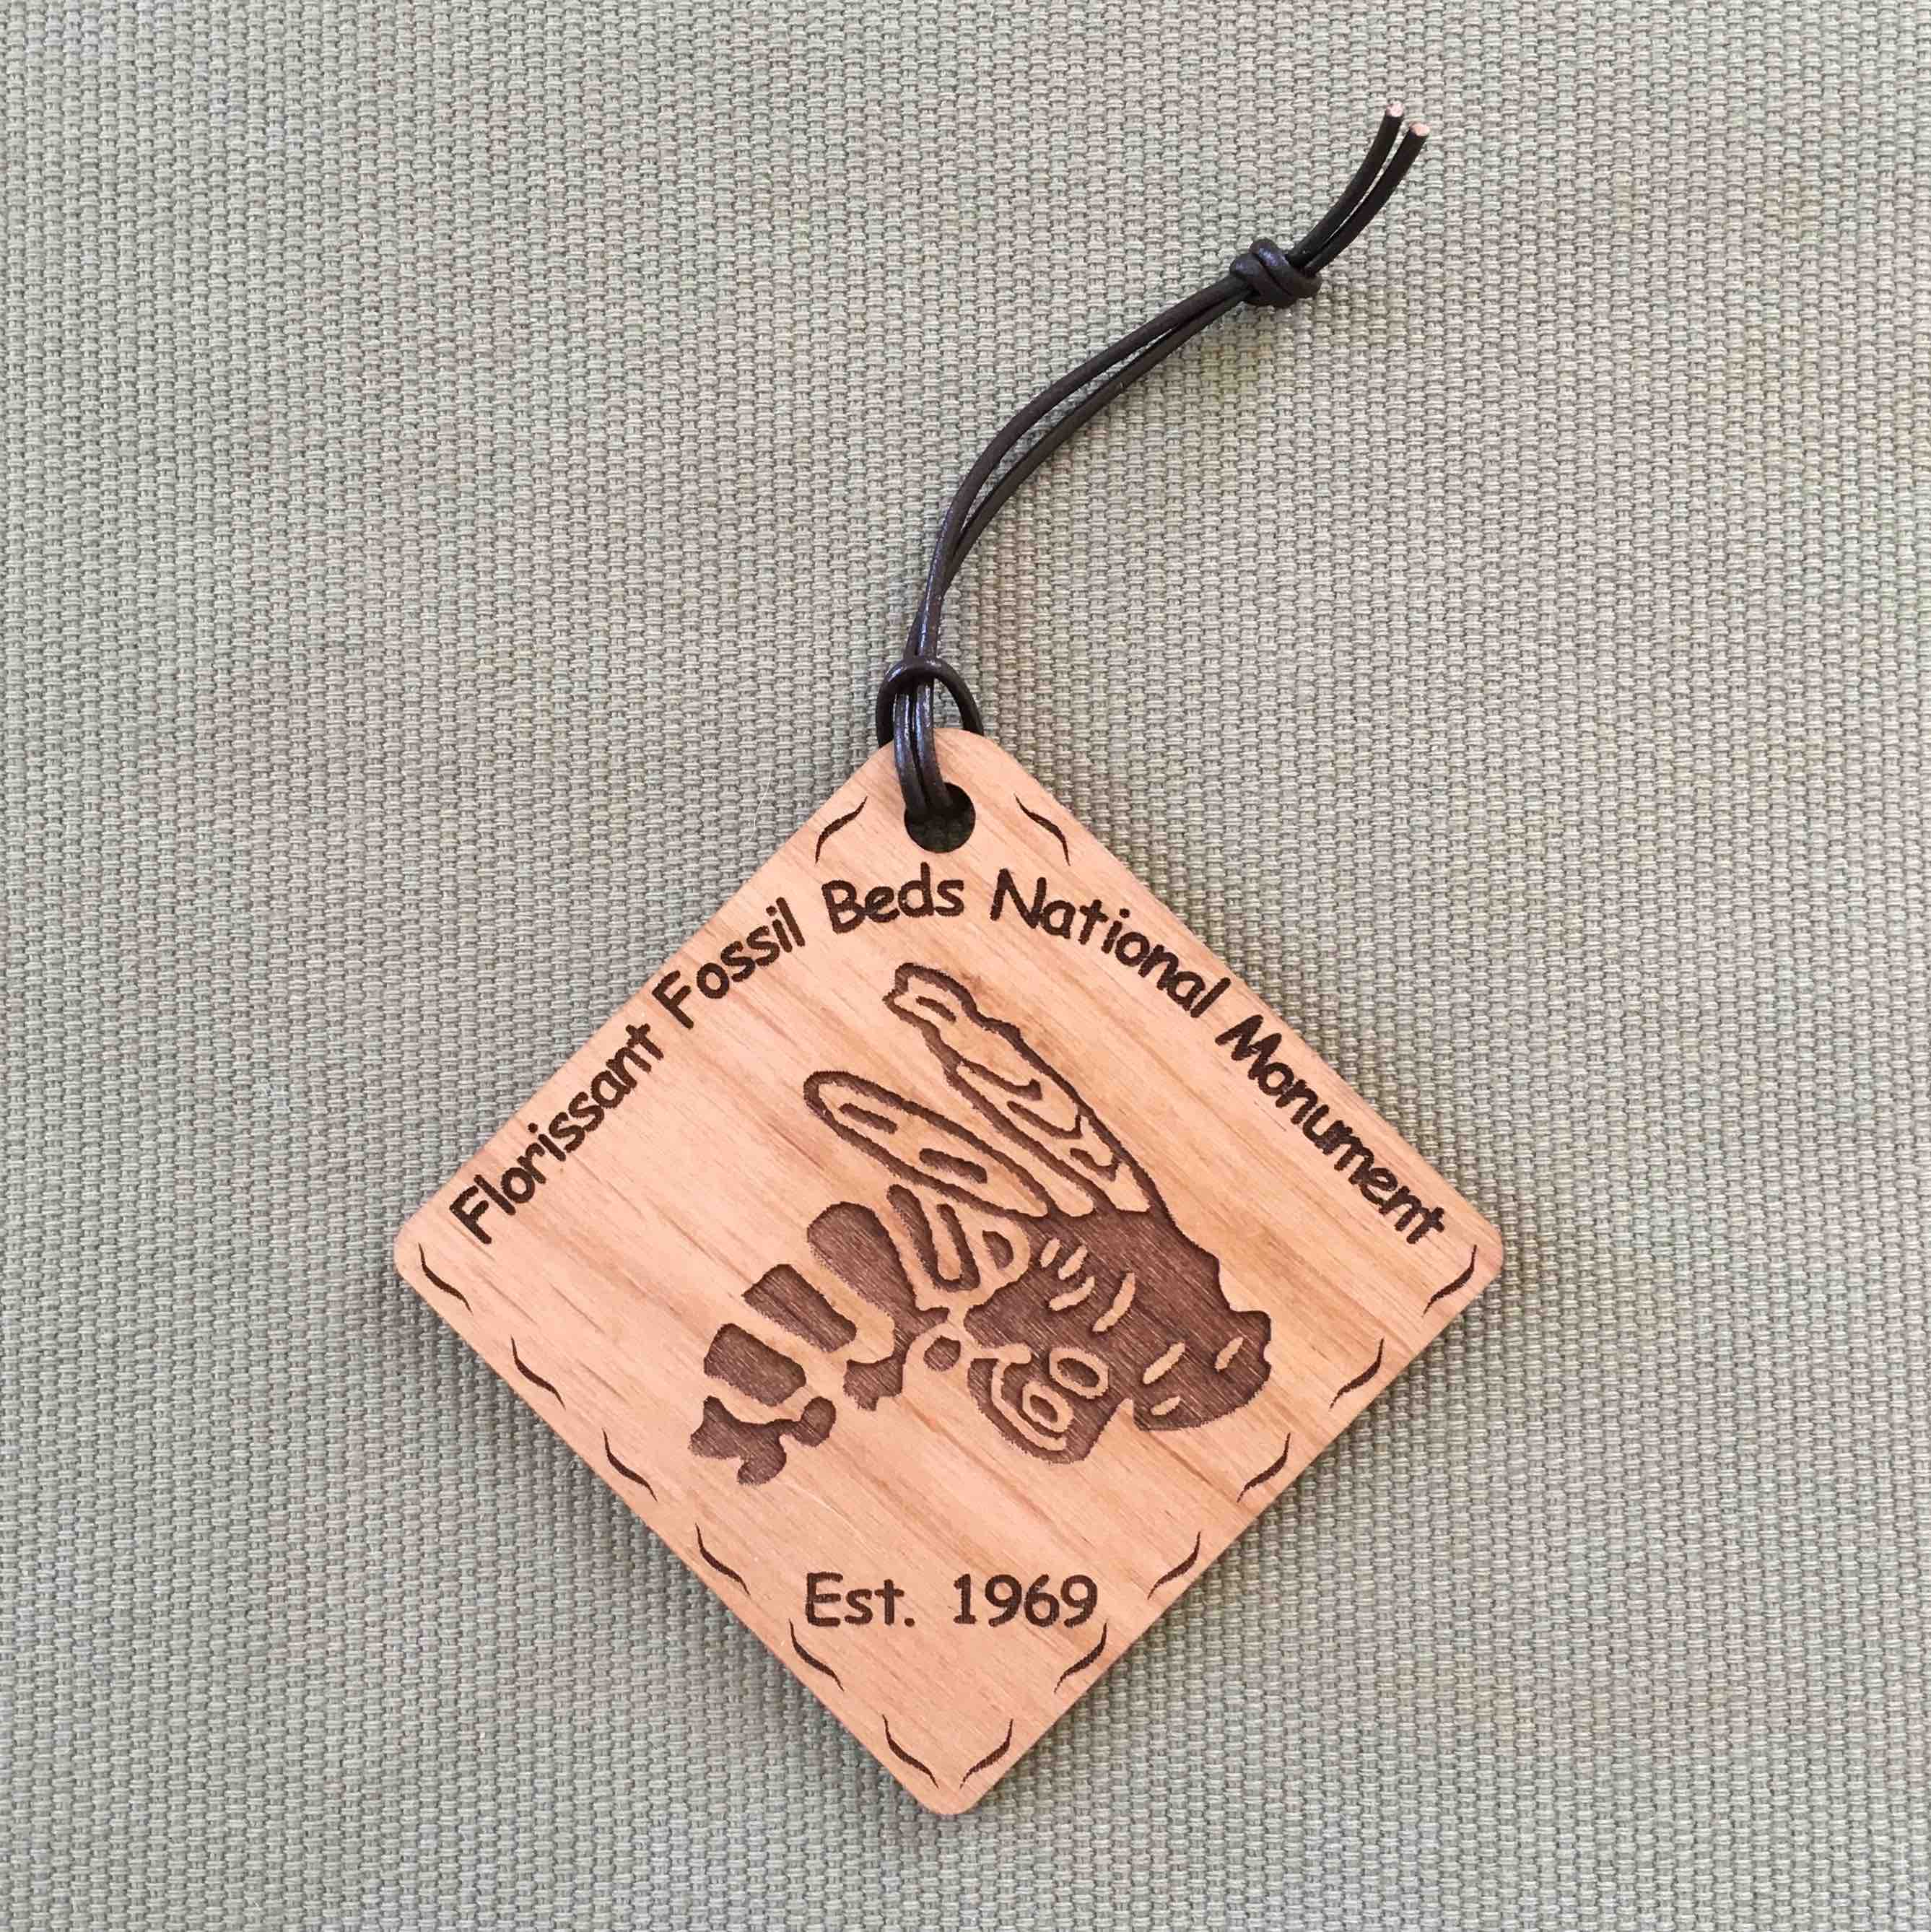 Florissant Fossil Beds National Monument Ornament